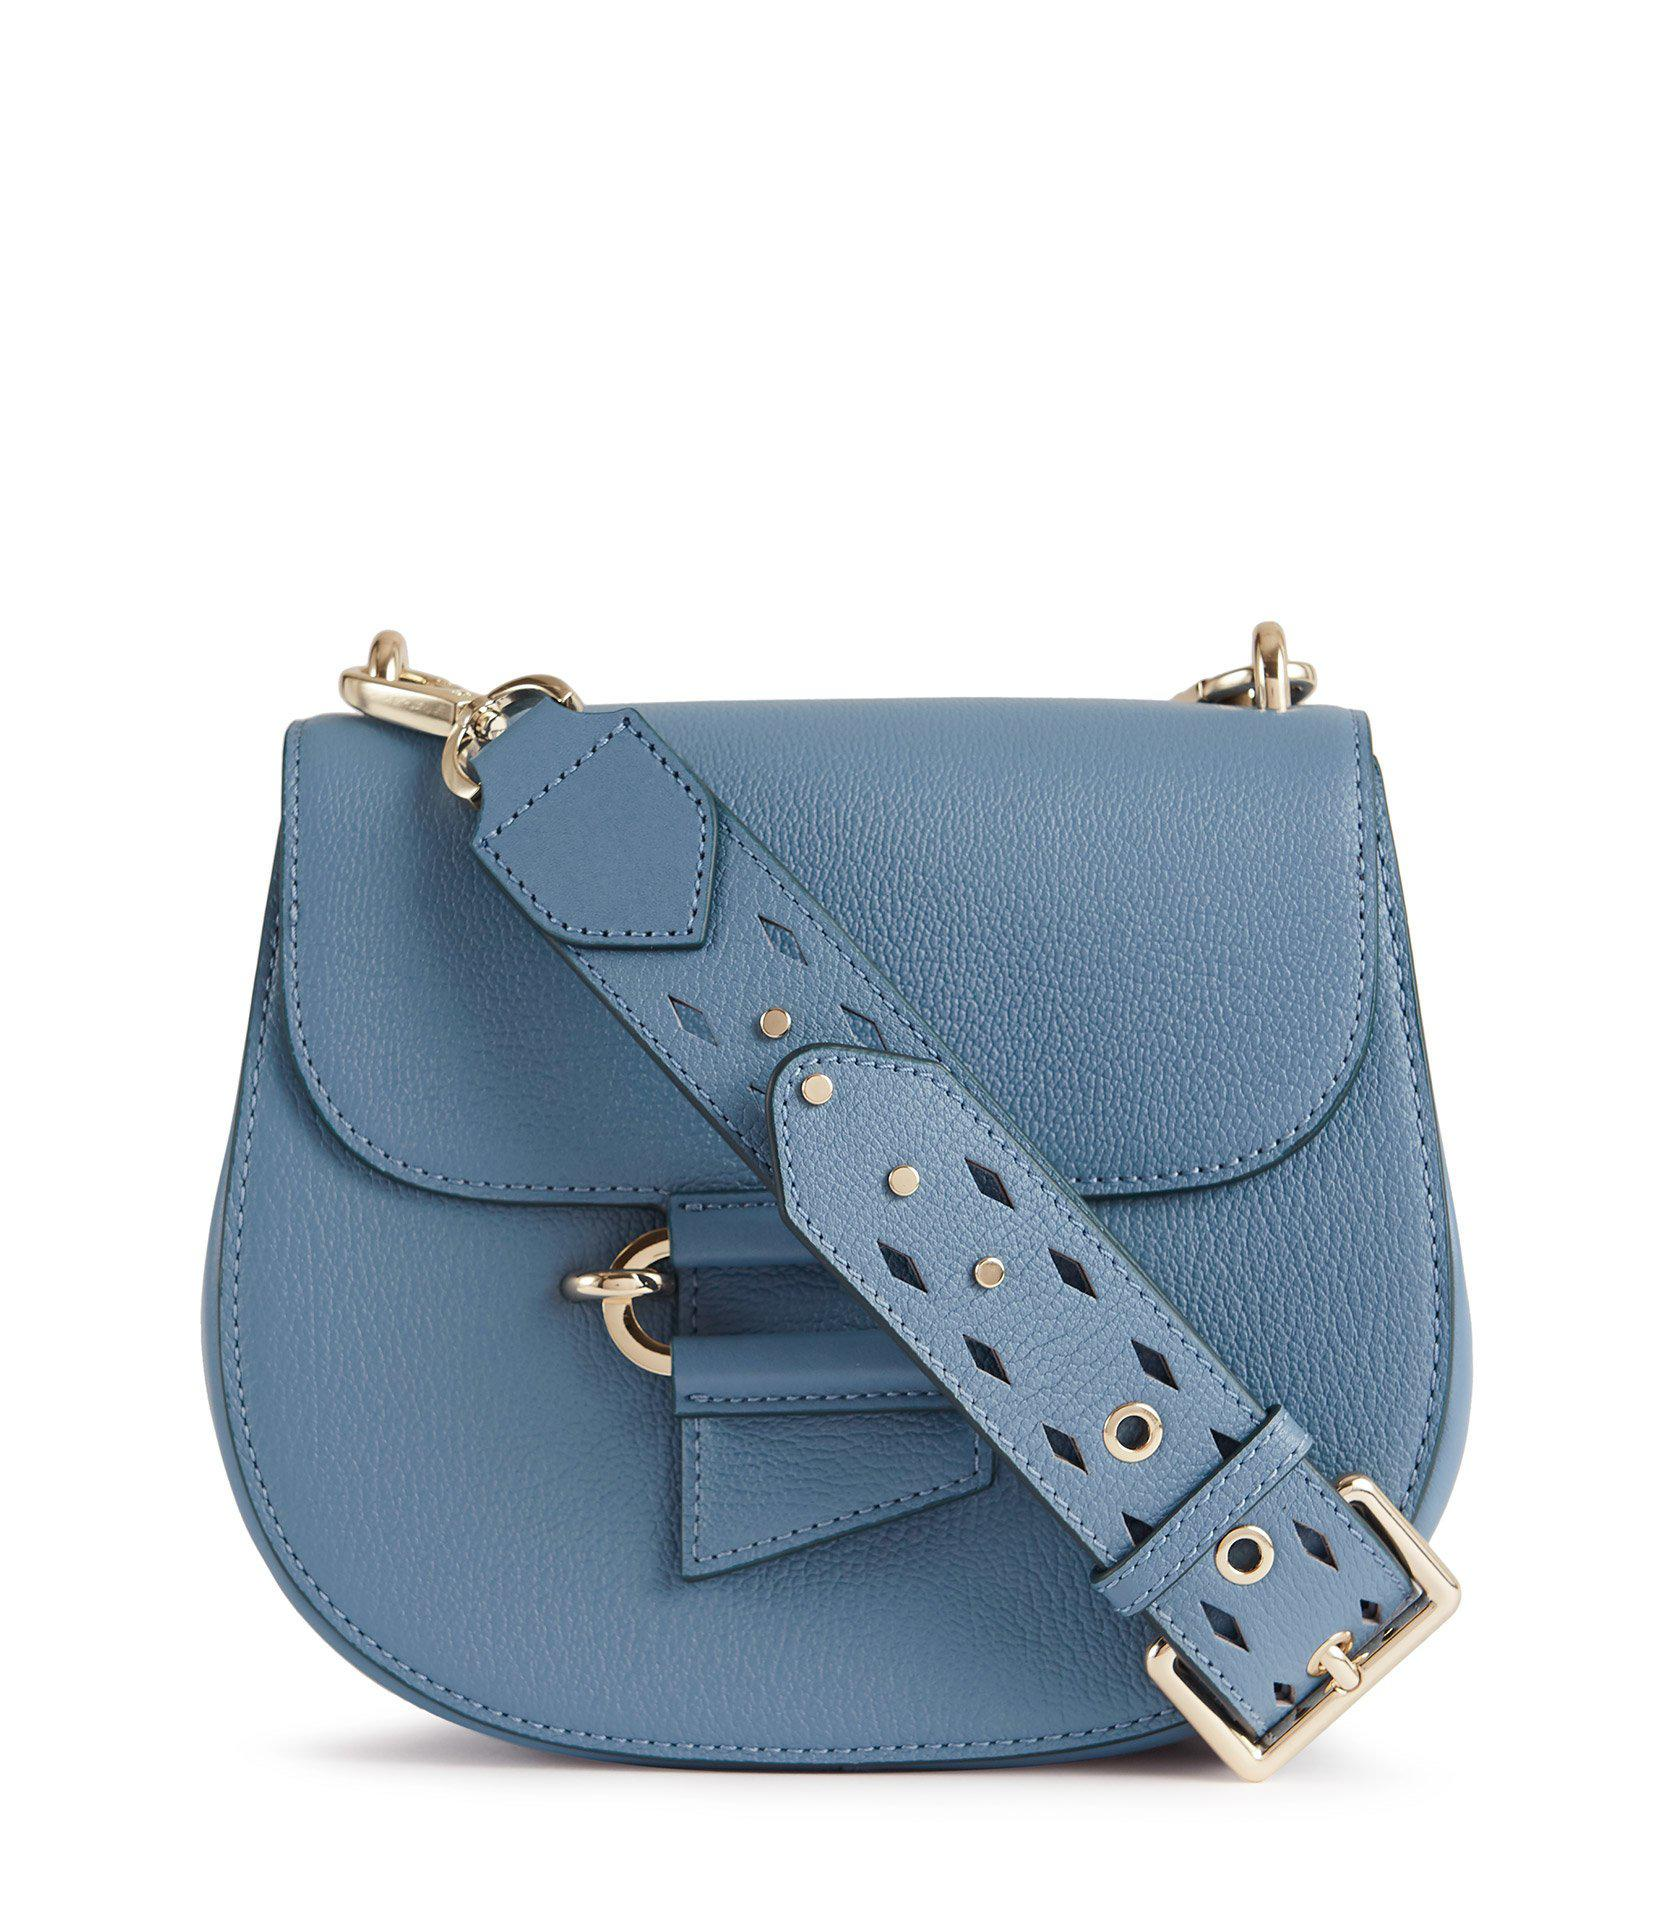 Maltby - Leather Cross-body Bag in Blue, Womens Reiss